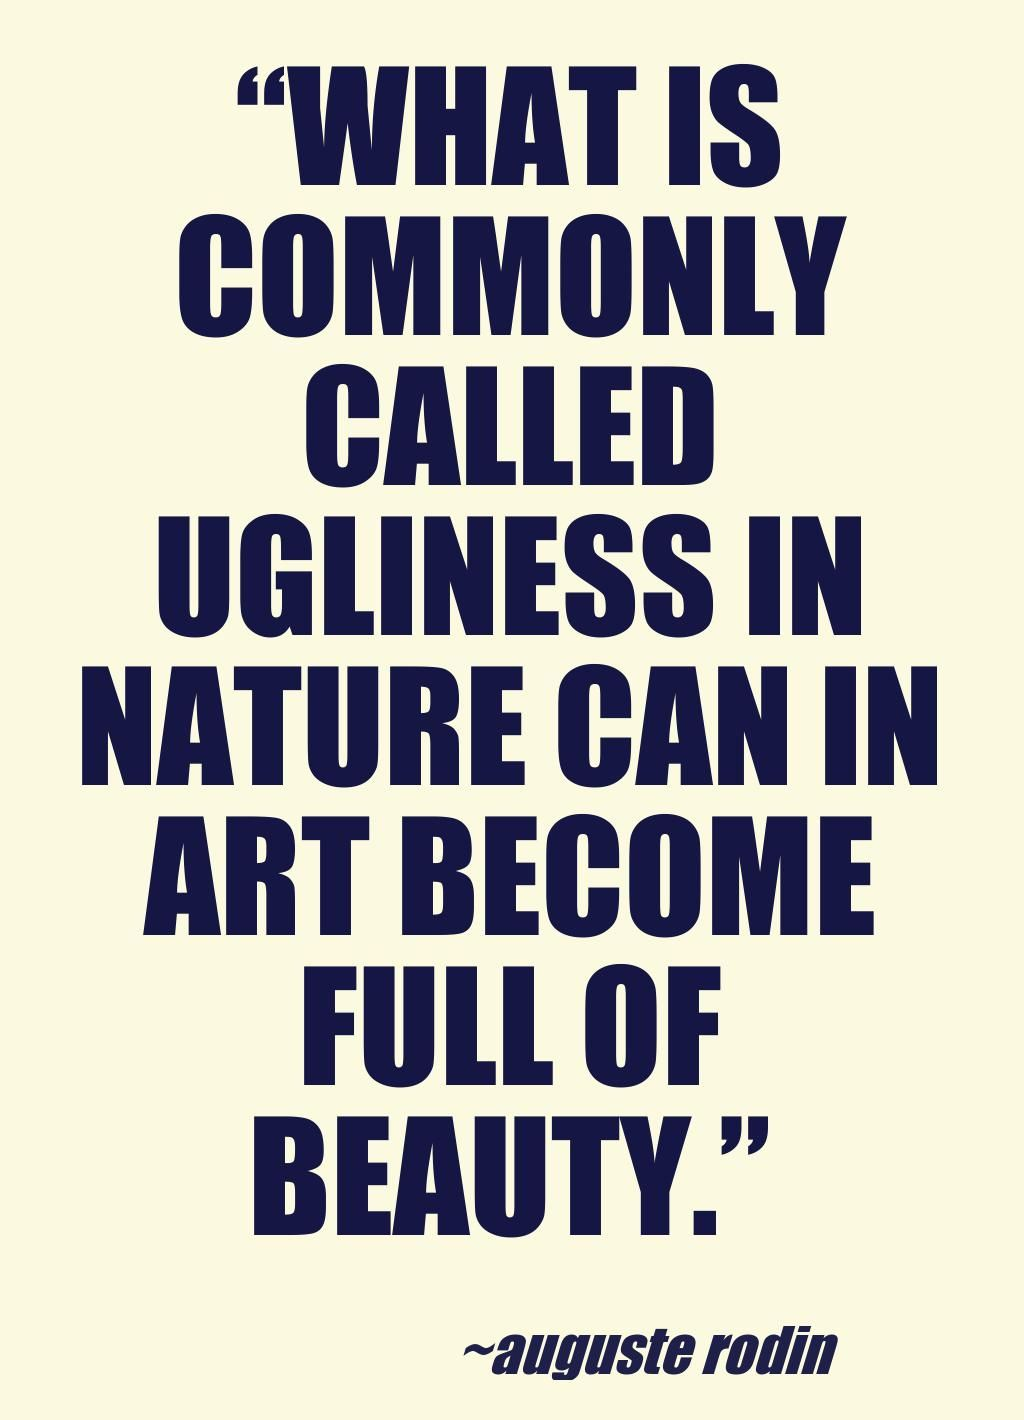 quote by artist Auguste Rodin